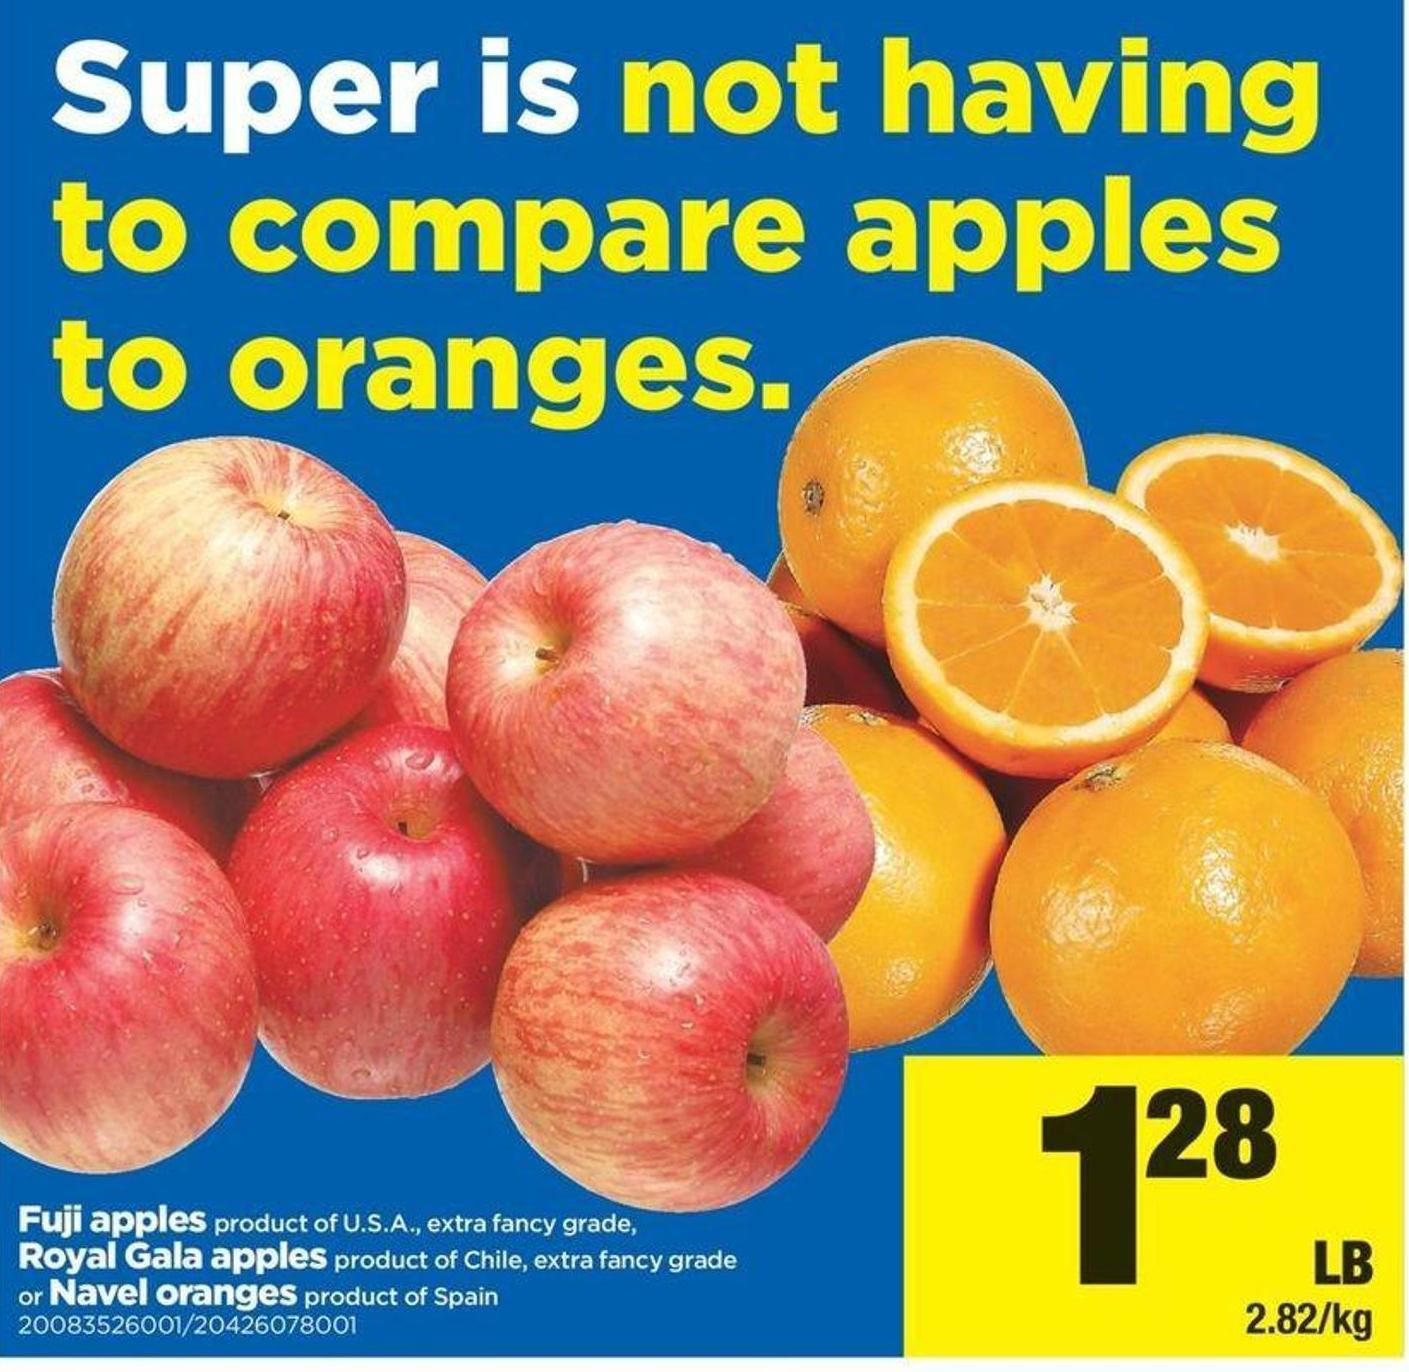 Fuji Apples Or Royal Gala Apples Or Navel Oranges